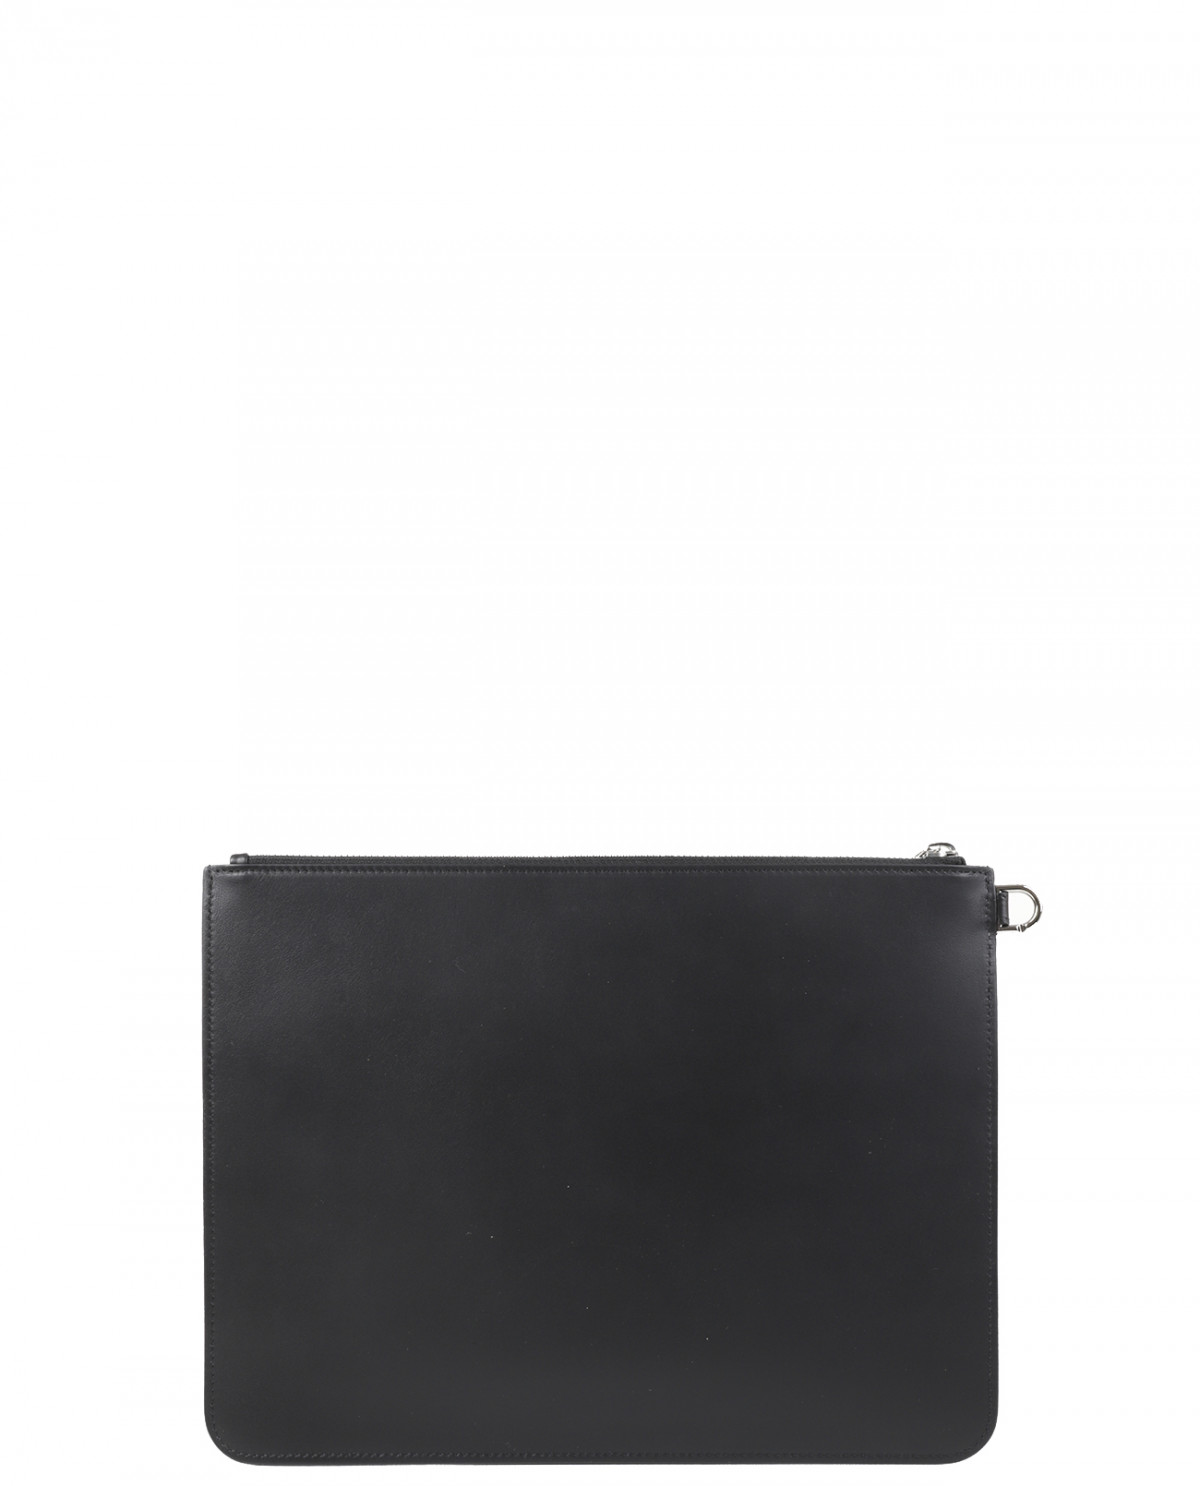 Dior Homme black wallet